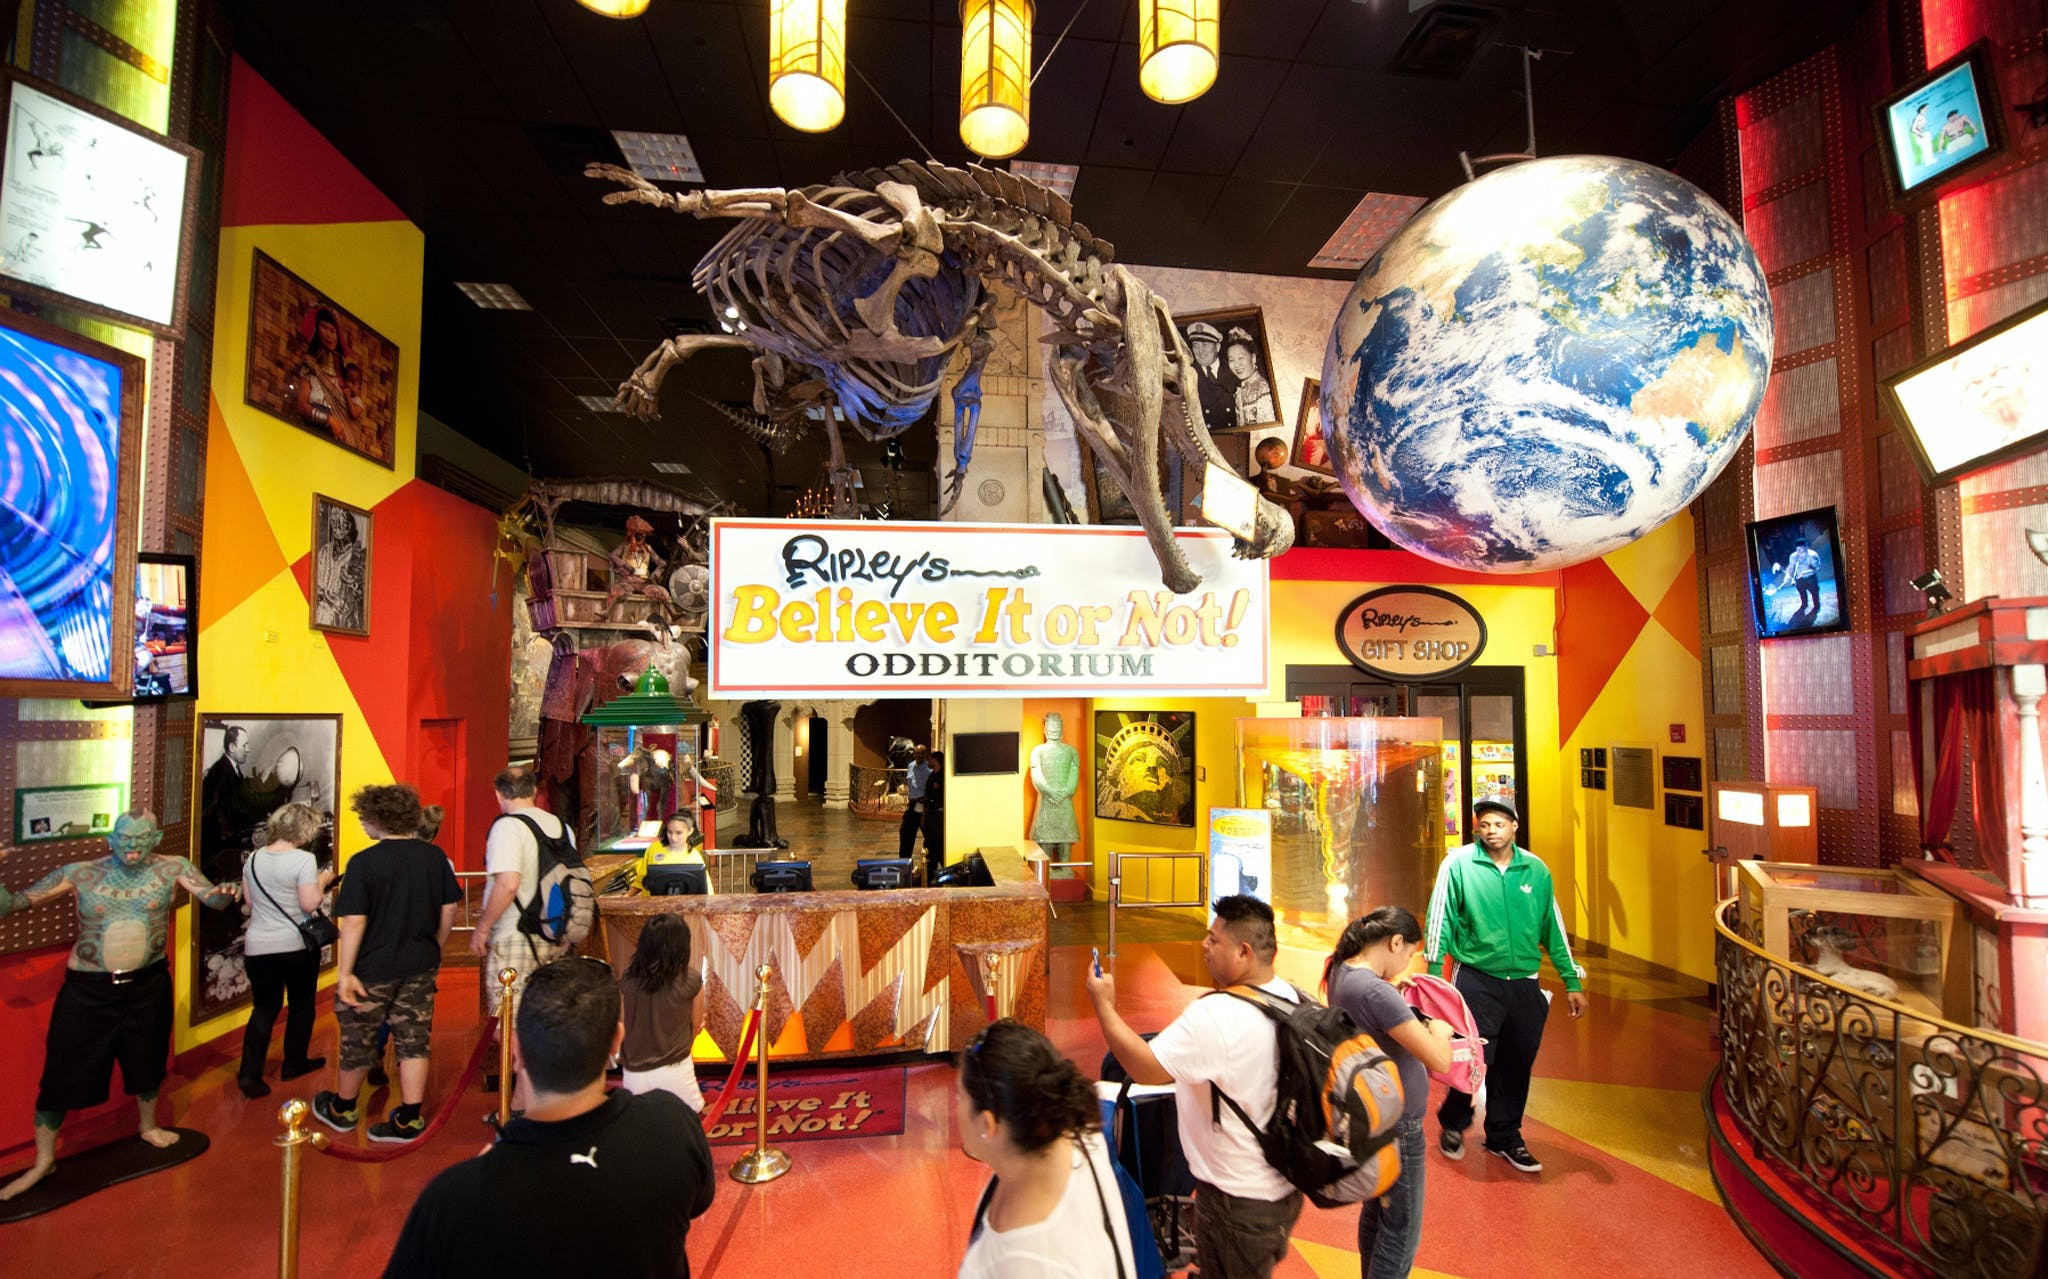 Planning a trip to NYC - Ripley's Believe It or Not NYC